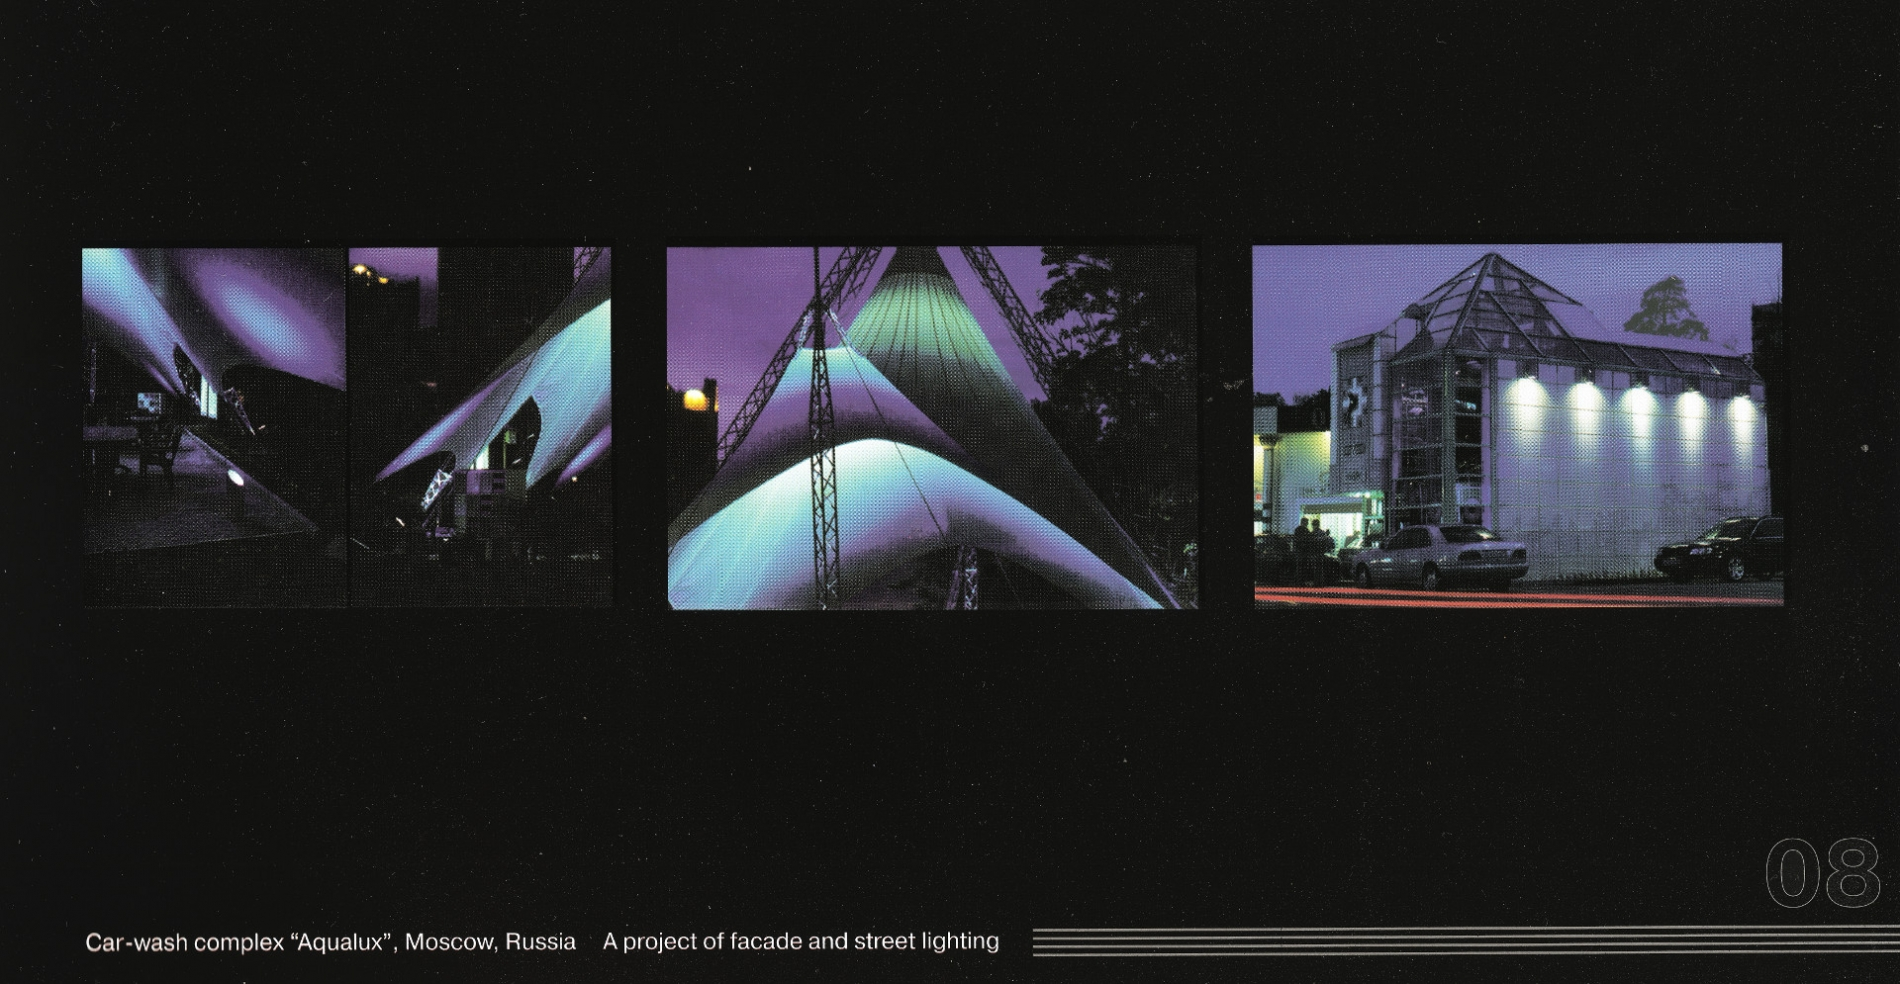 architectural lighting 08